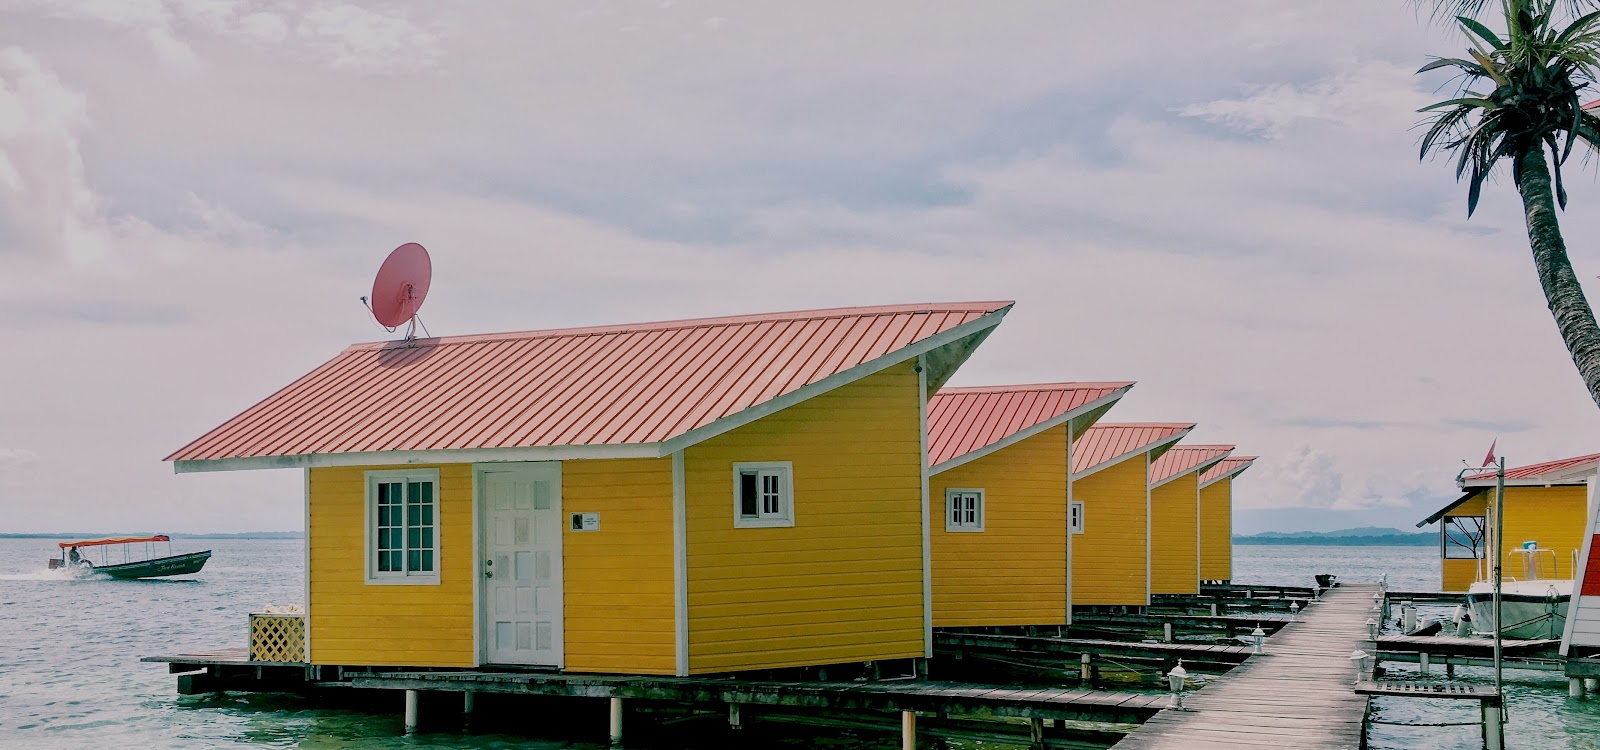 shacks-on-pier.jpeg